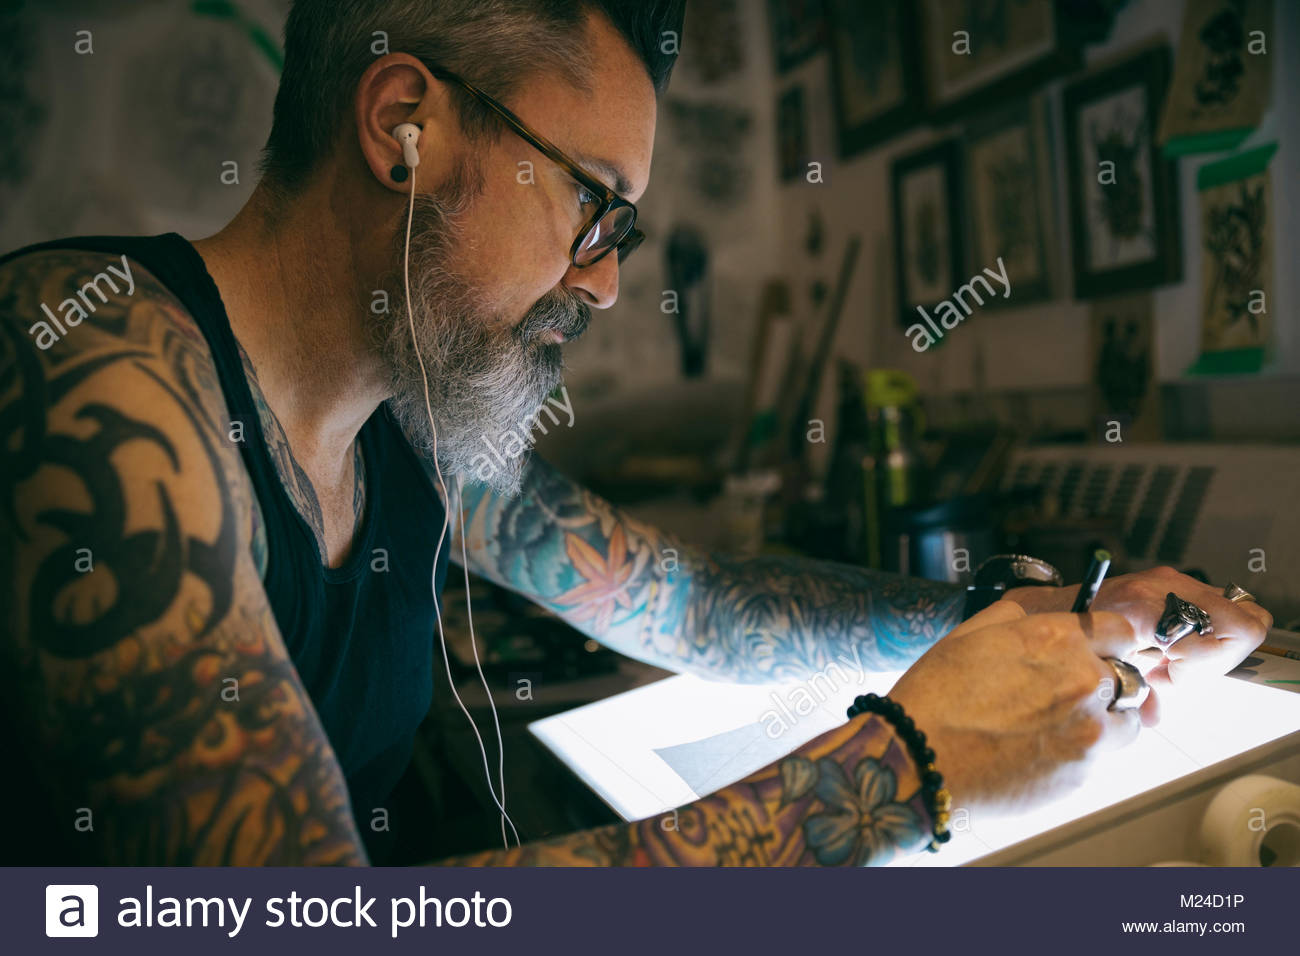 Tattoo artist listening to music and sketching at light table in dark tattoo studio - Stock Image